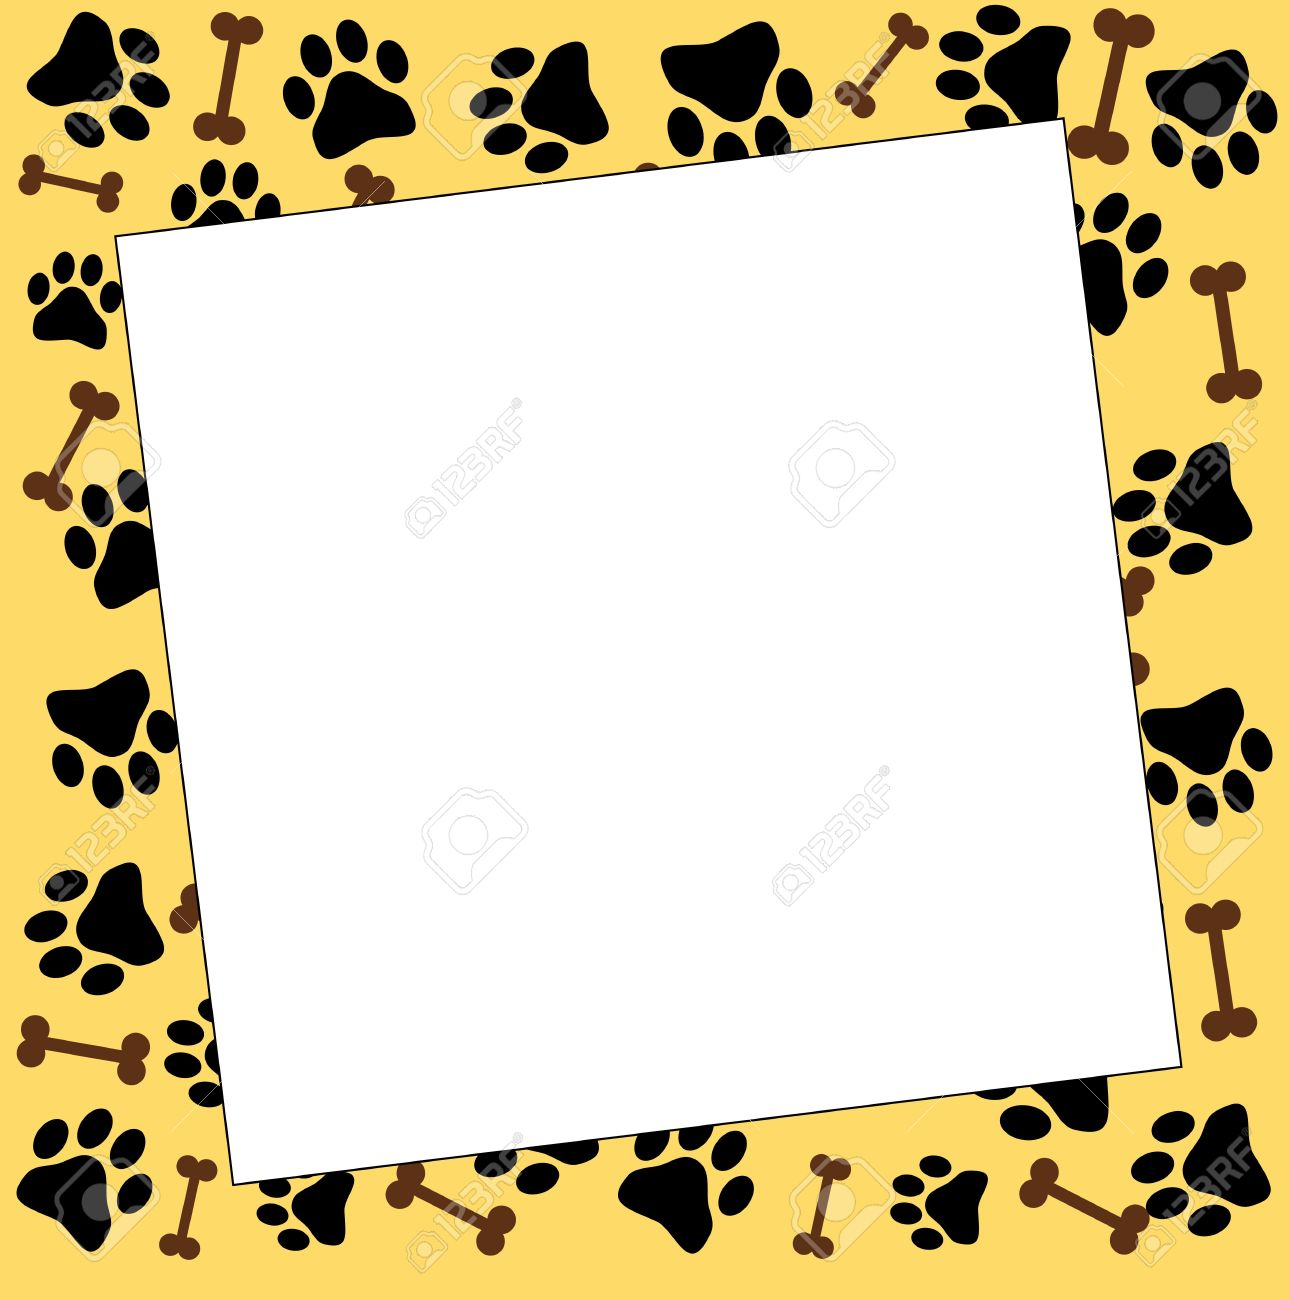 Frame With Paw Prints Stock Photo, Picture And Royalty Free Image ...